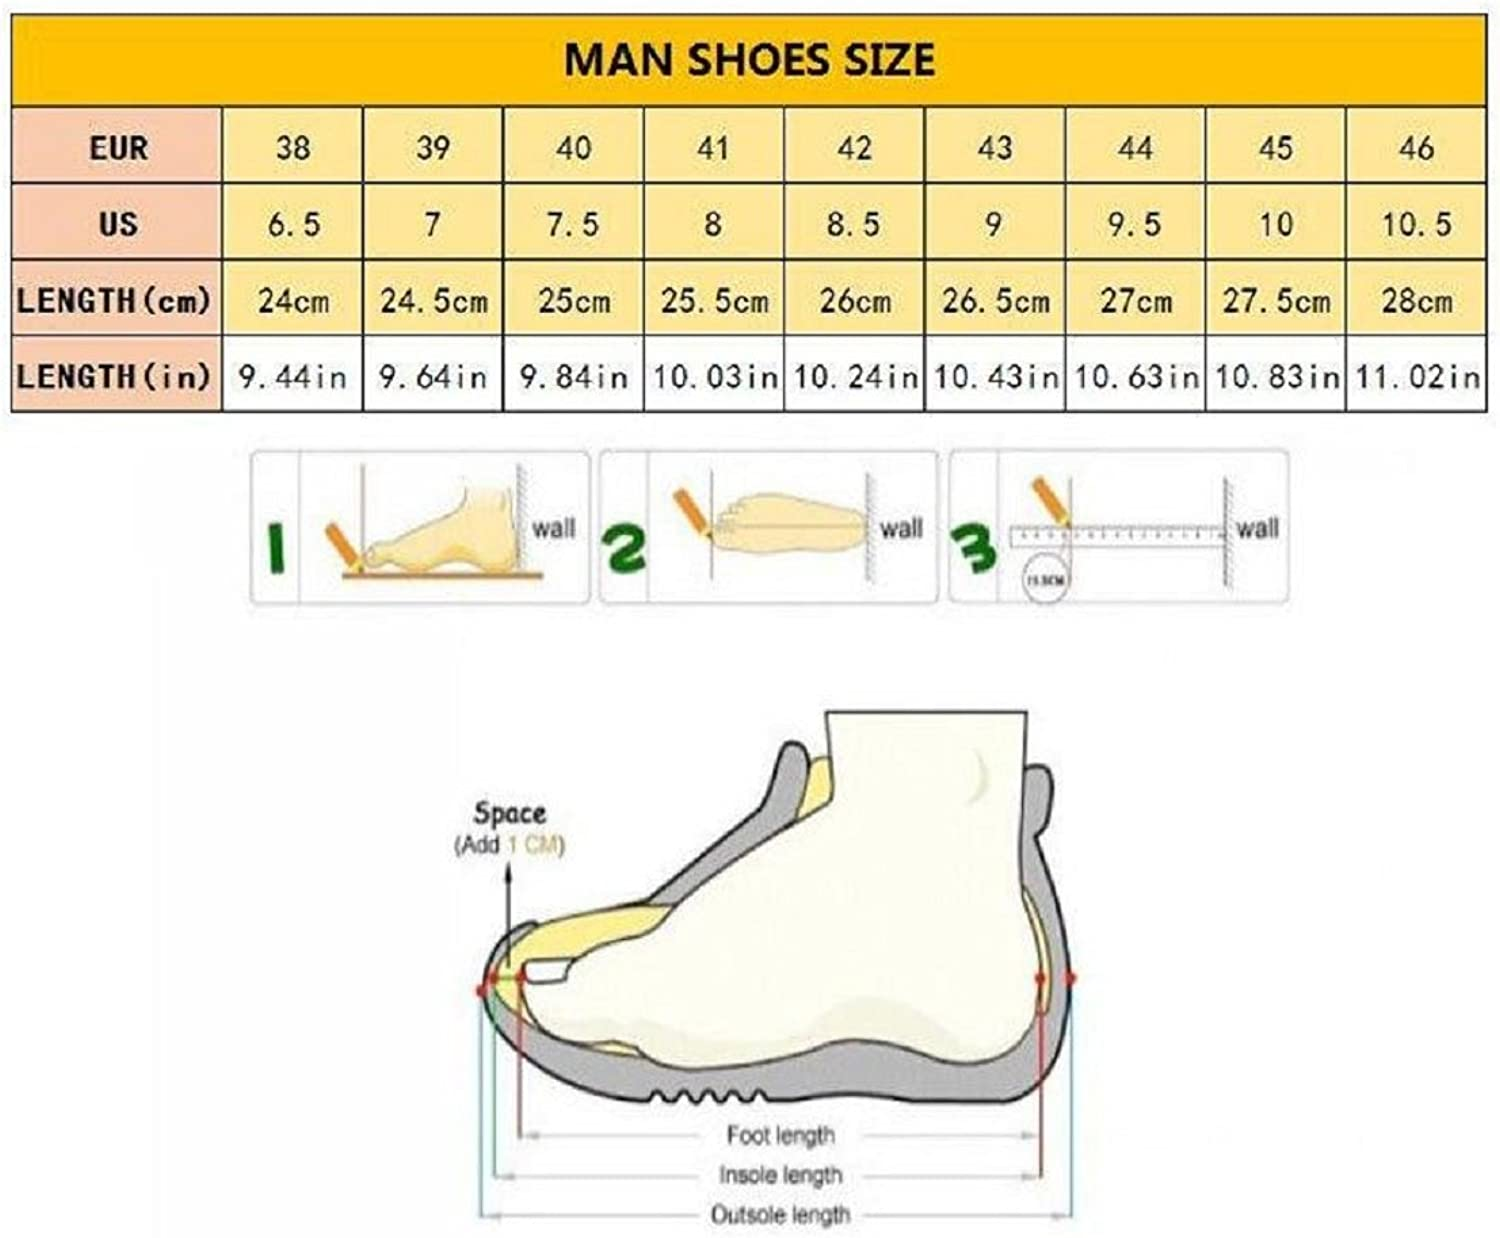 Men's Joe & Joe New England Leather Suede Moccasin Slippers Fashion Slippers Sandals Men's Fashion Sandals